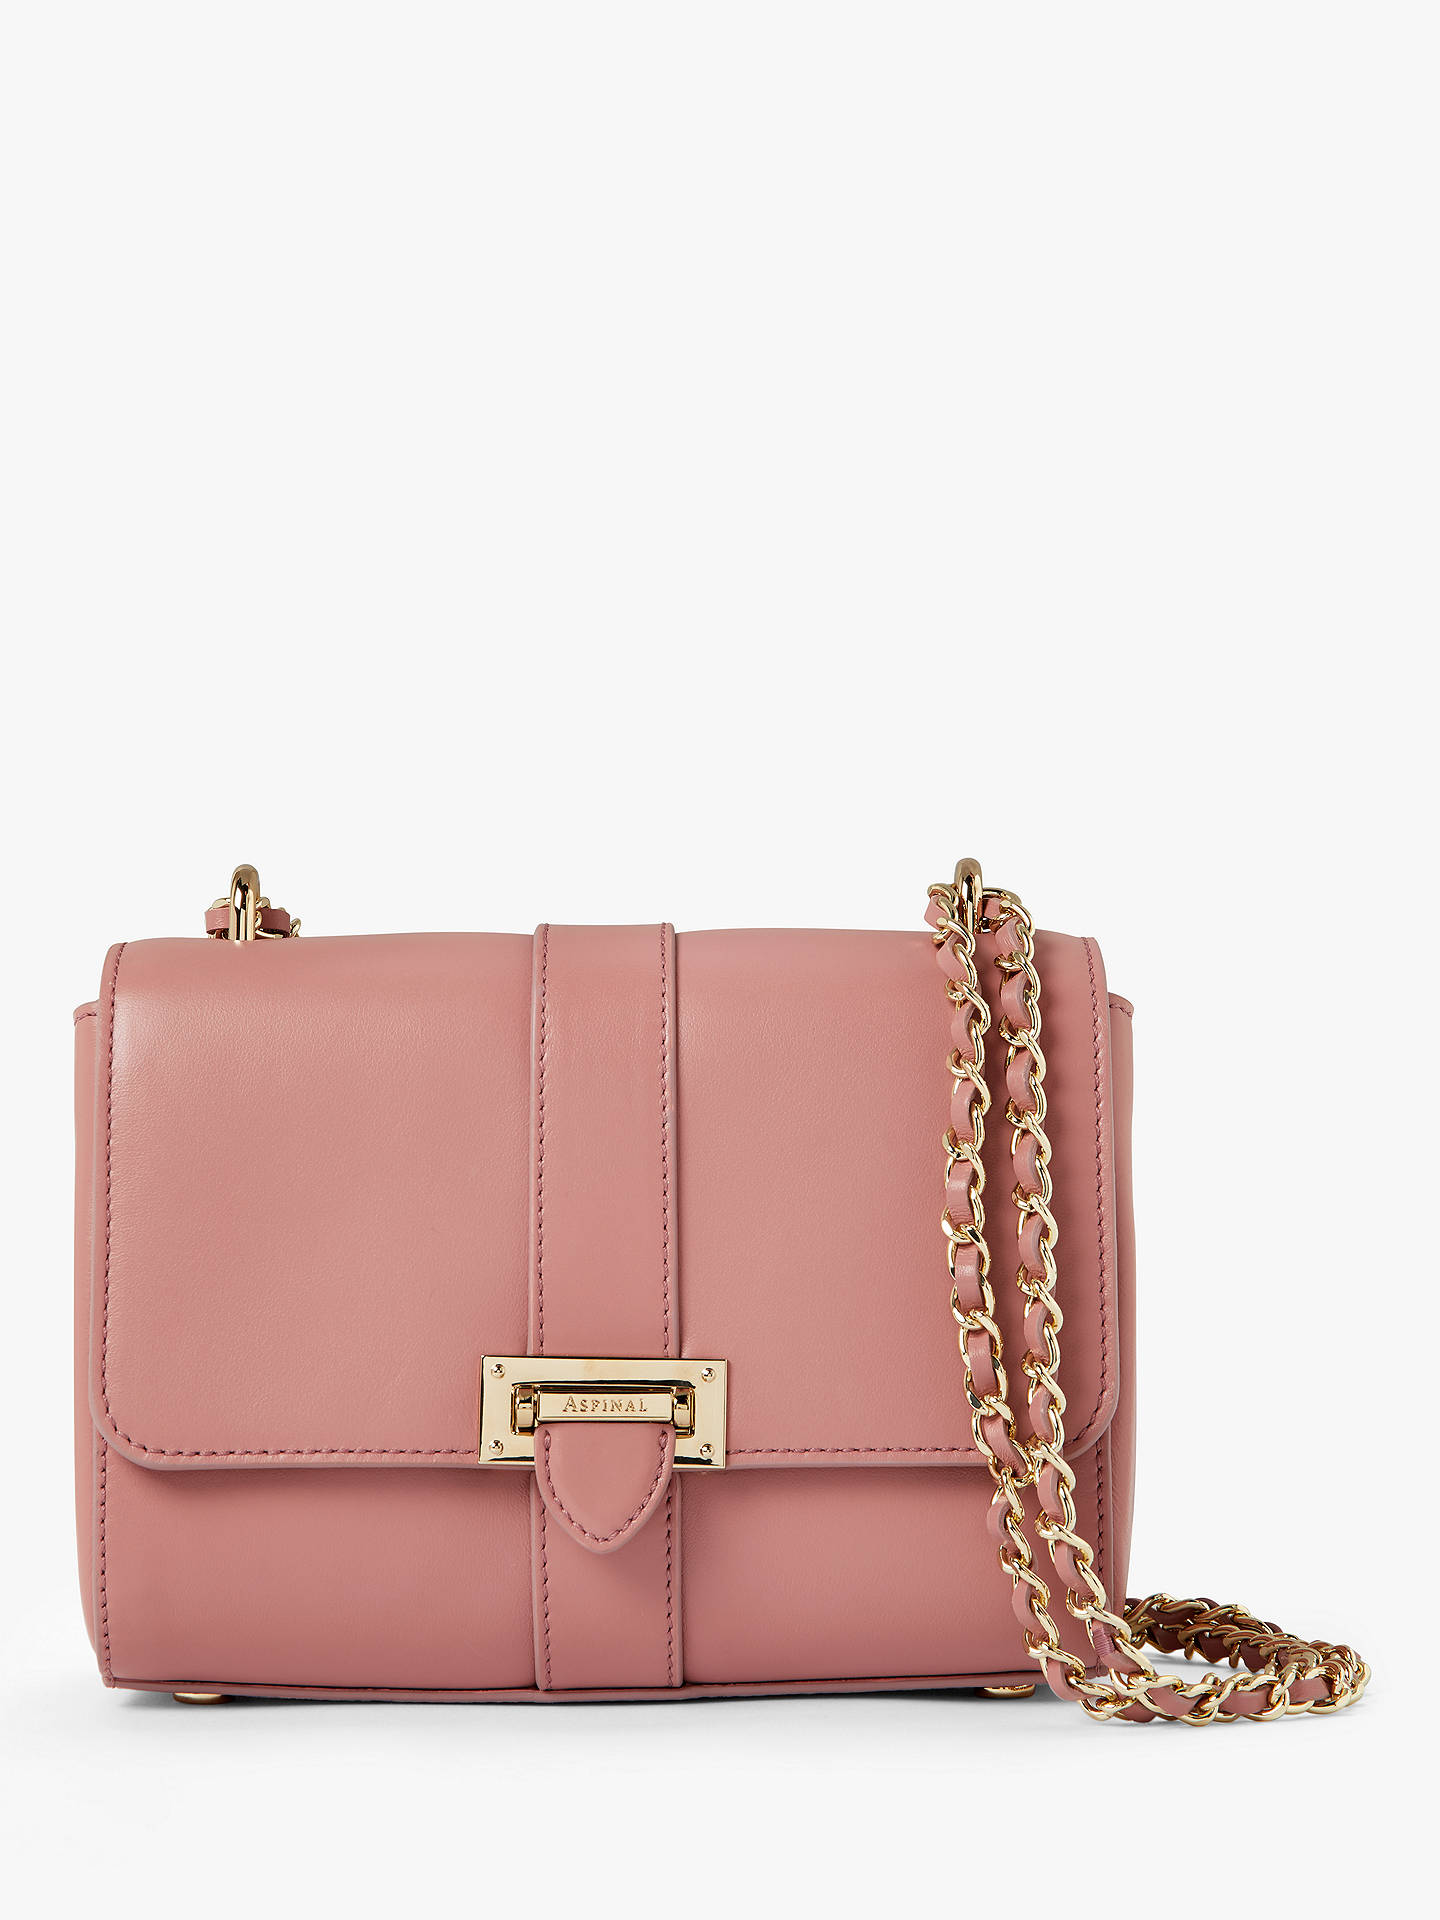 ae52bbaecb1862 Buy Aspinal of London Lottie Leather Cross Body Bag, Dusty Pink Online at  johnlewis.